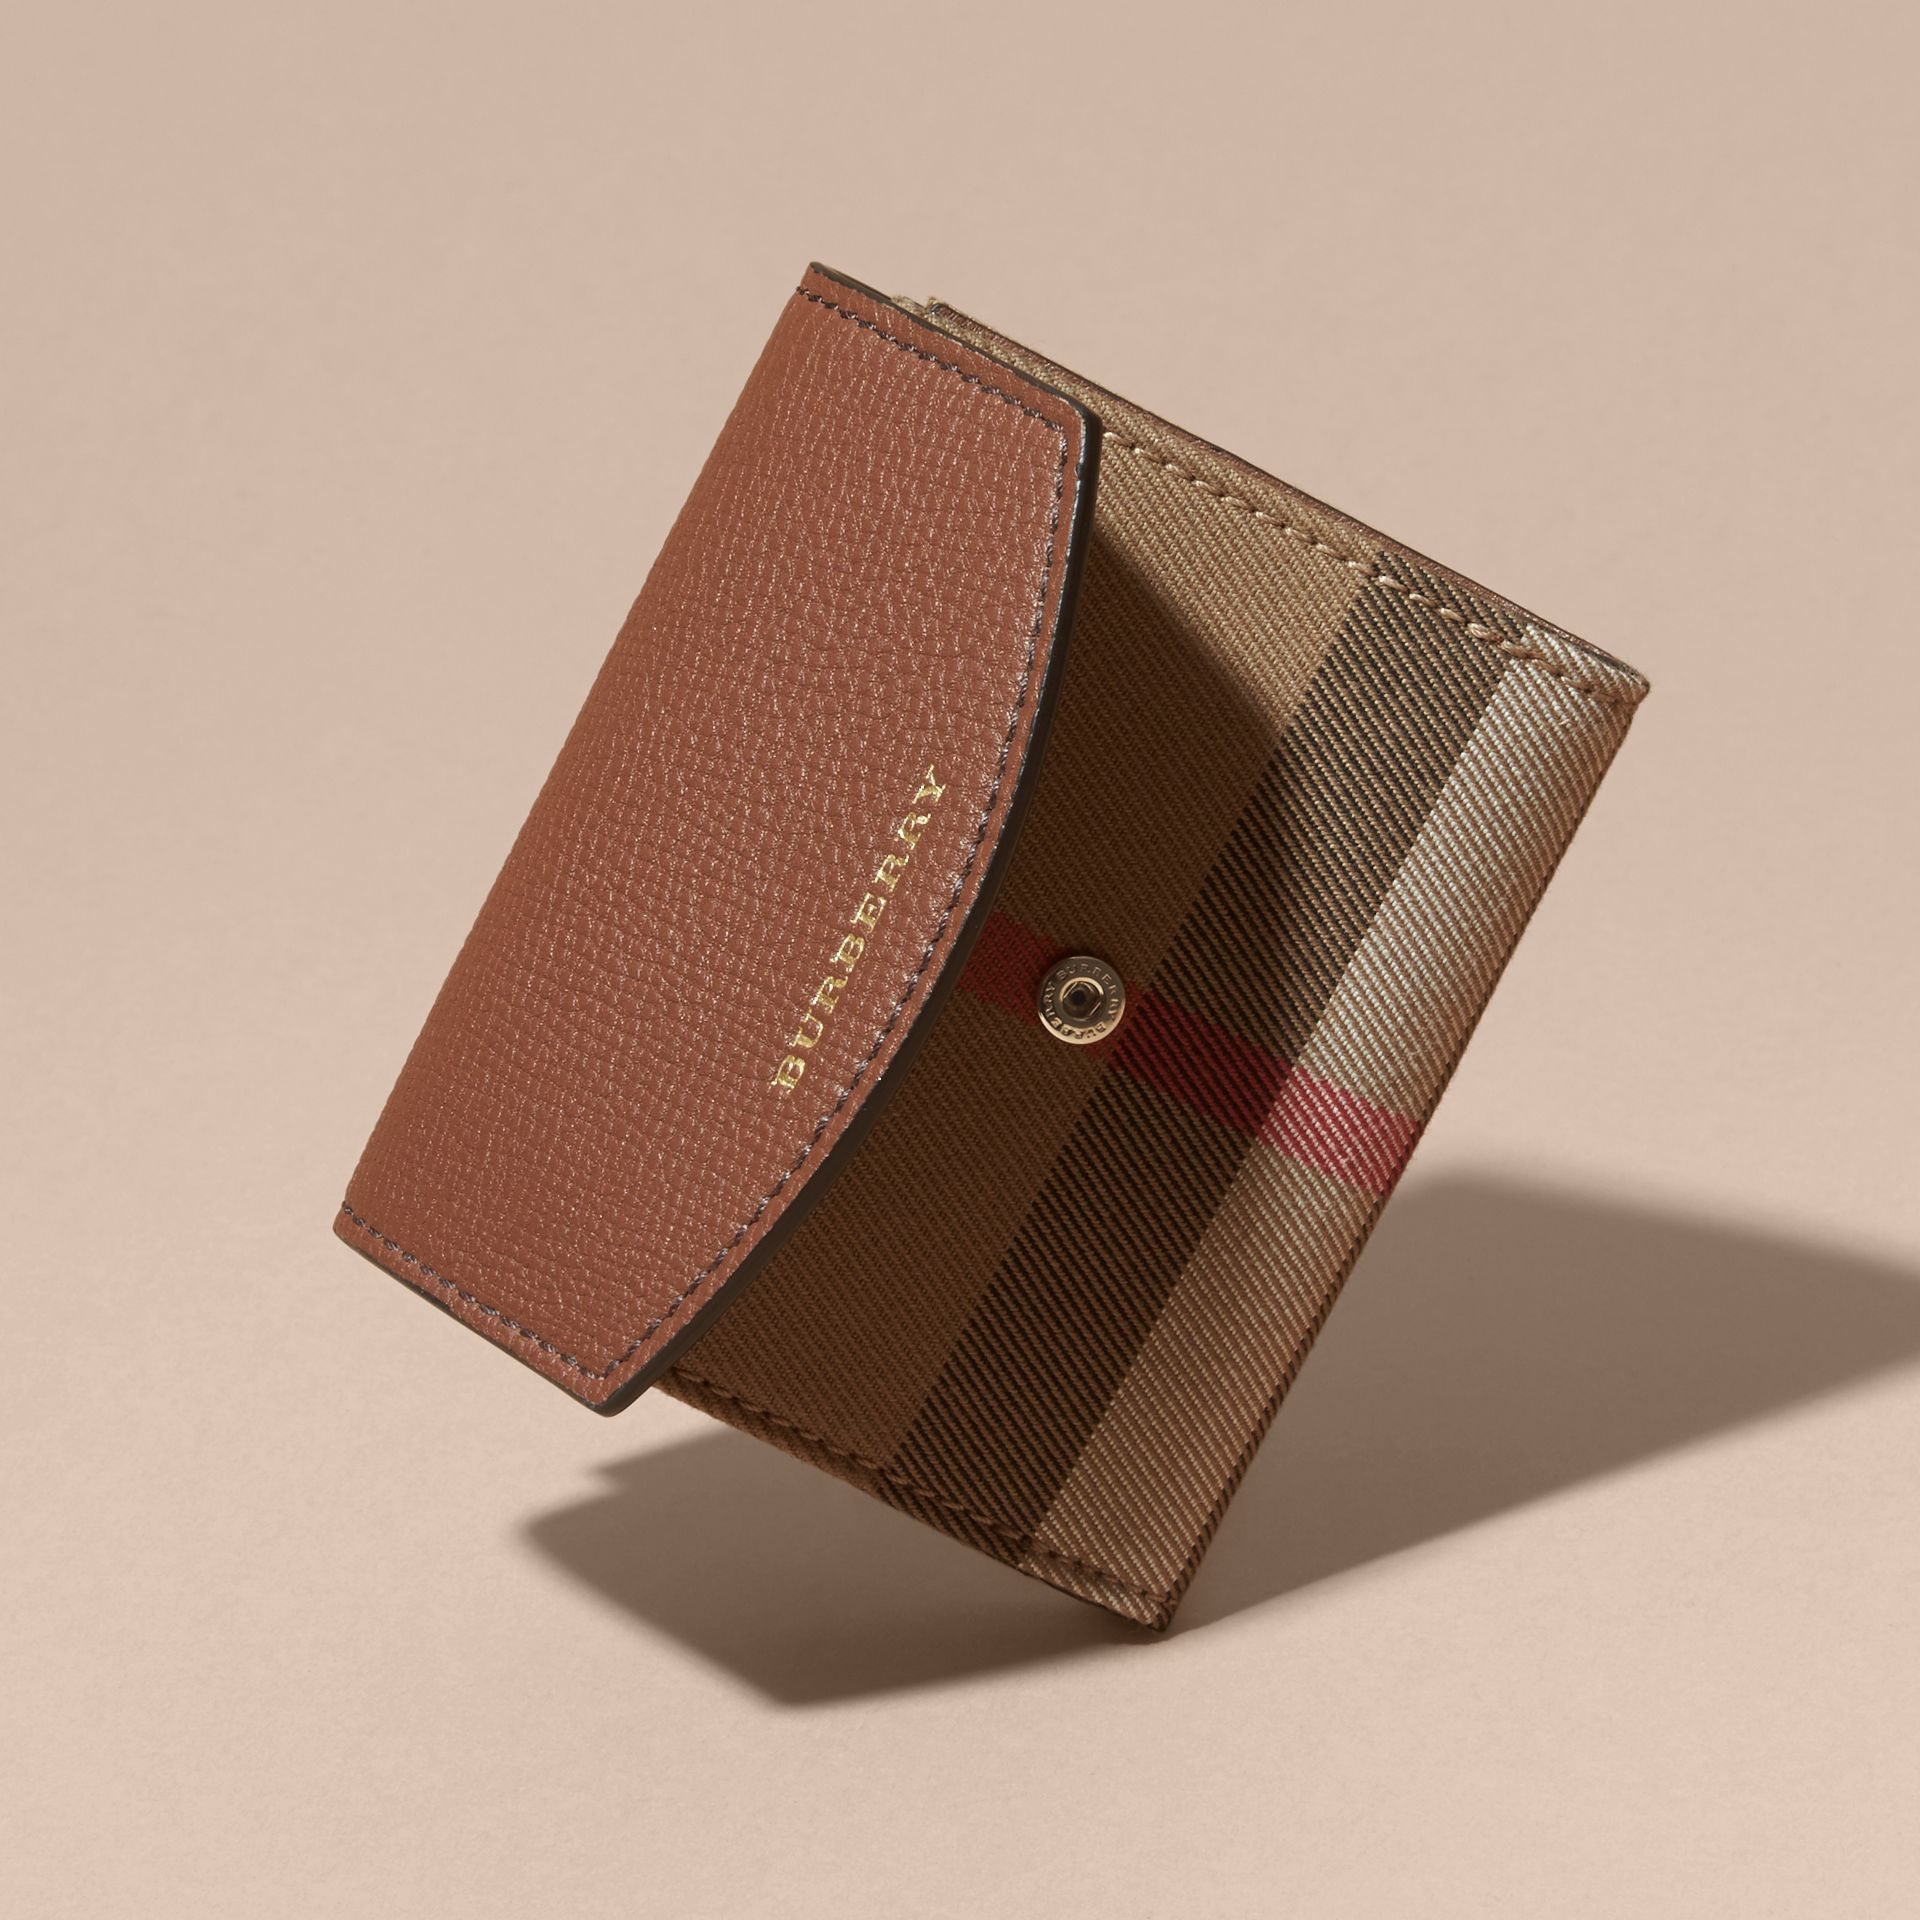 House Check and Leather Wallet in Tan - Women | Burberry - gallery image 4